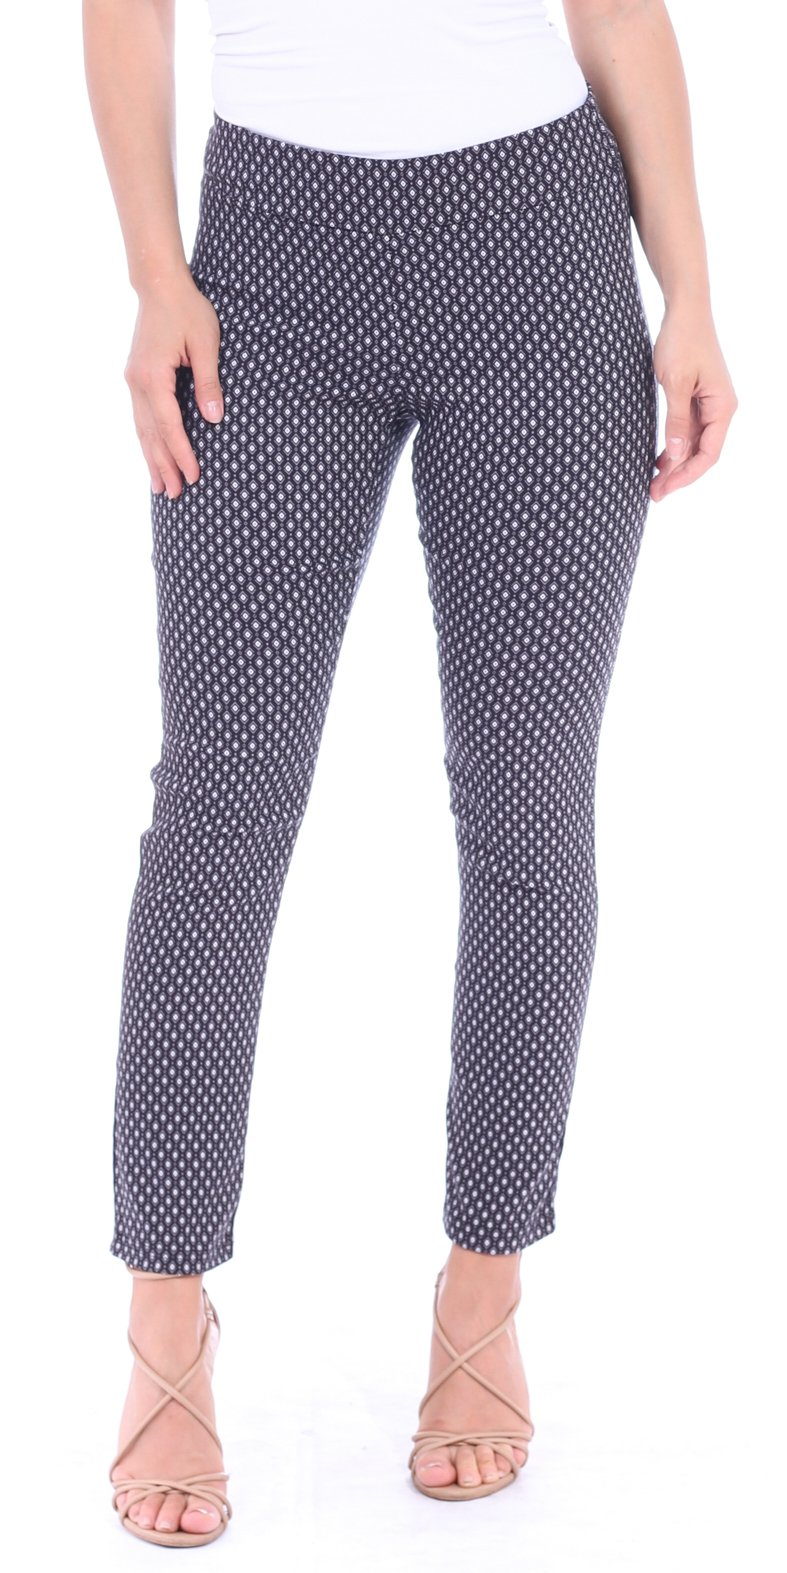 Popana Pull On Pants For Women Ankle Length - Casual Mid Rise Stretch Office Work Pants Medium M3